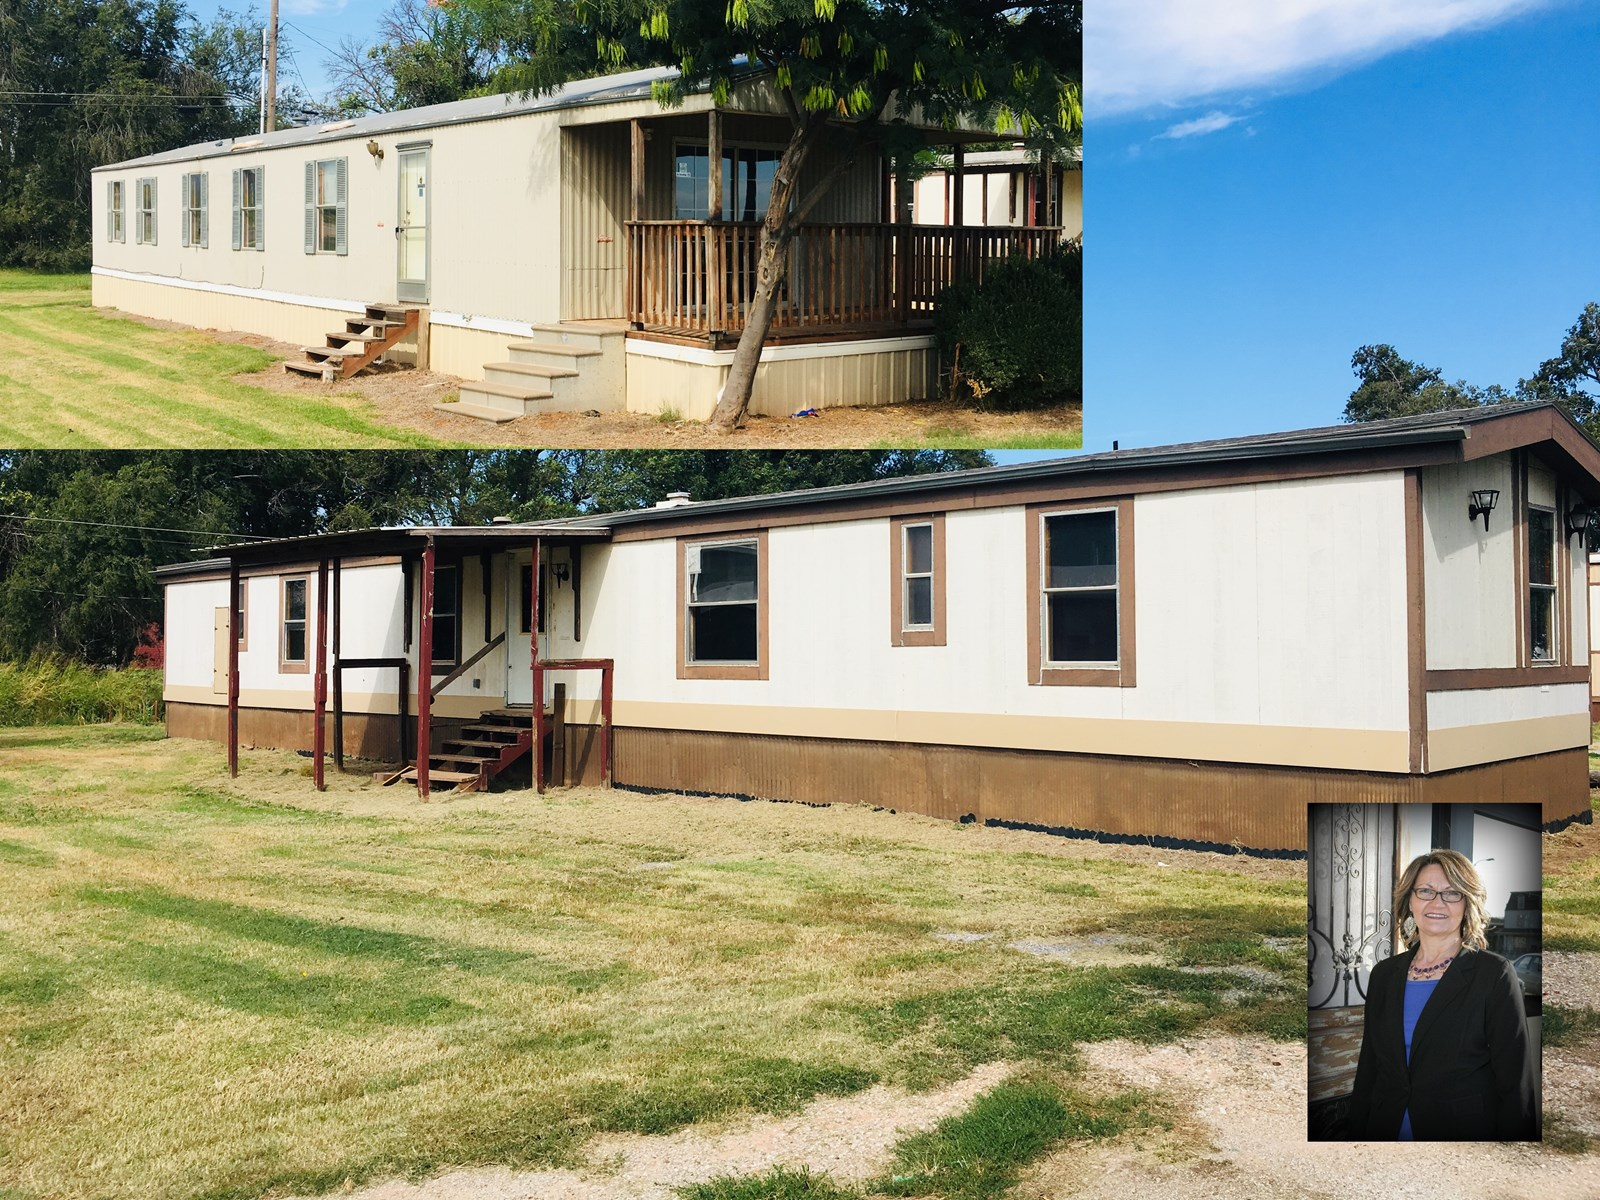 Investment is Calling! 2 Mobile Homes for 1 Price!